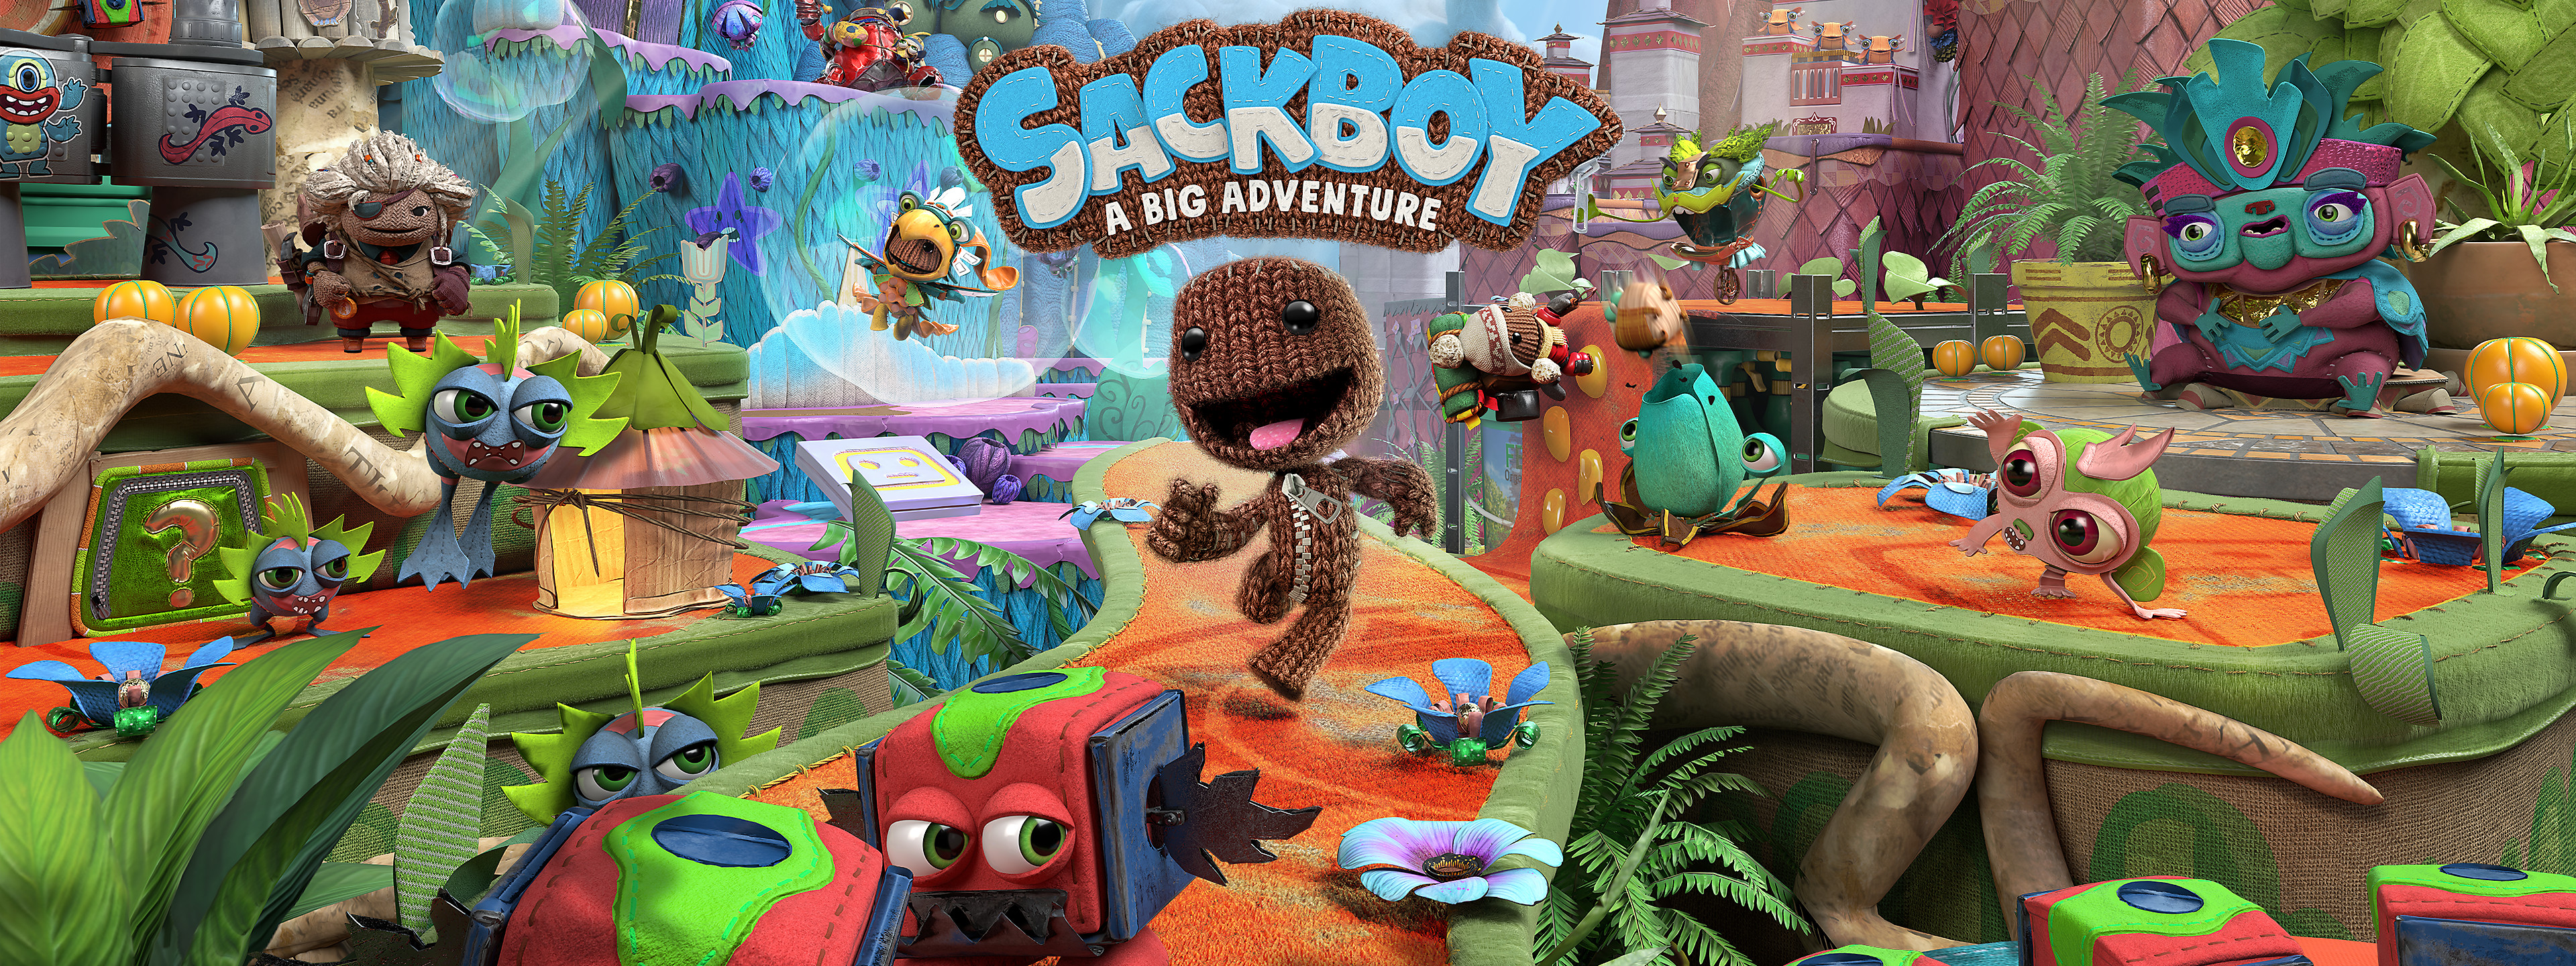 Sackboy A Big Adventure - Gameplay Trailer Now Available